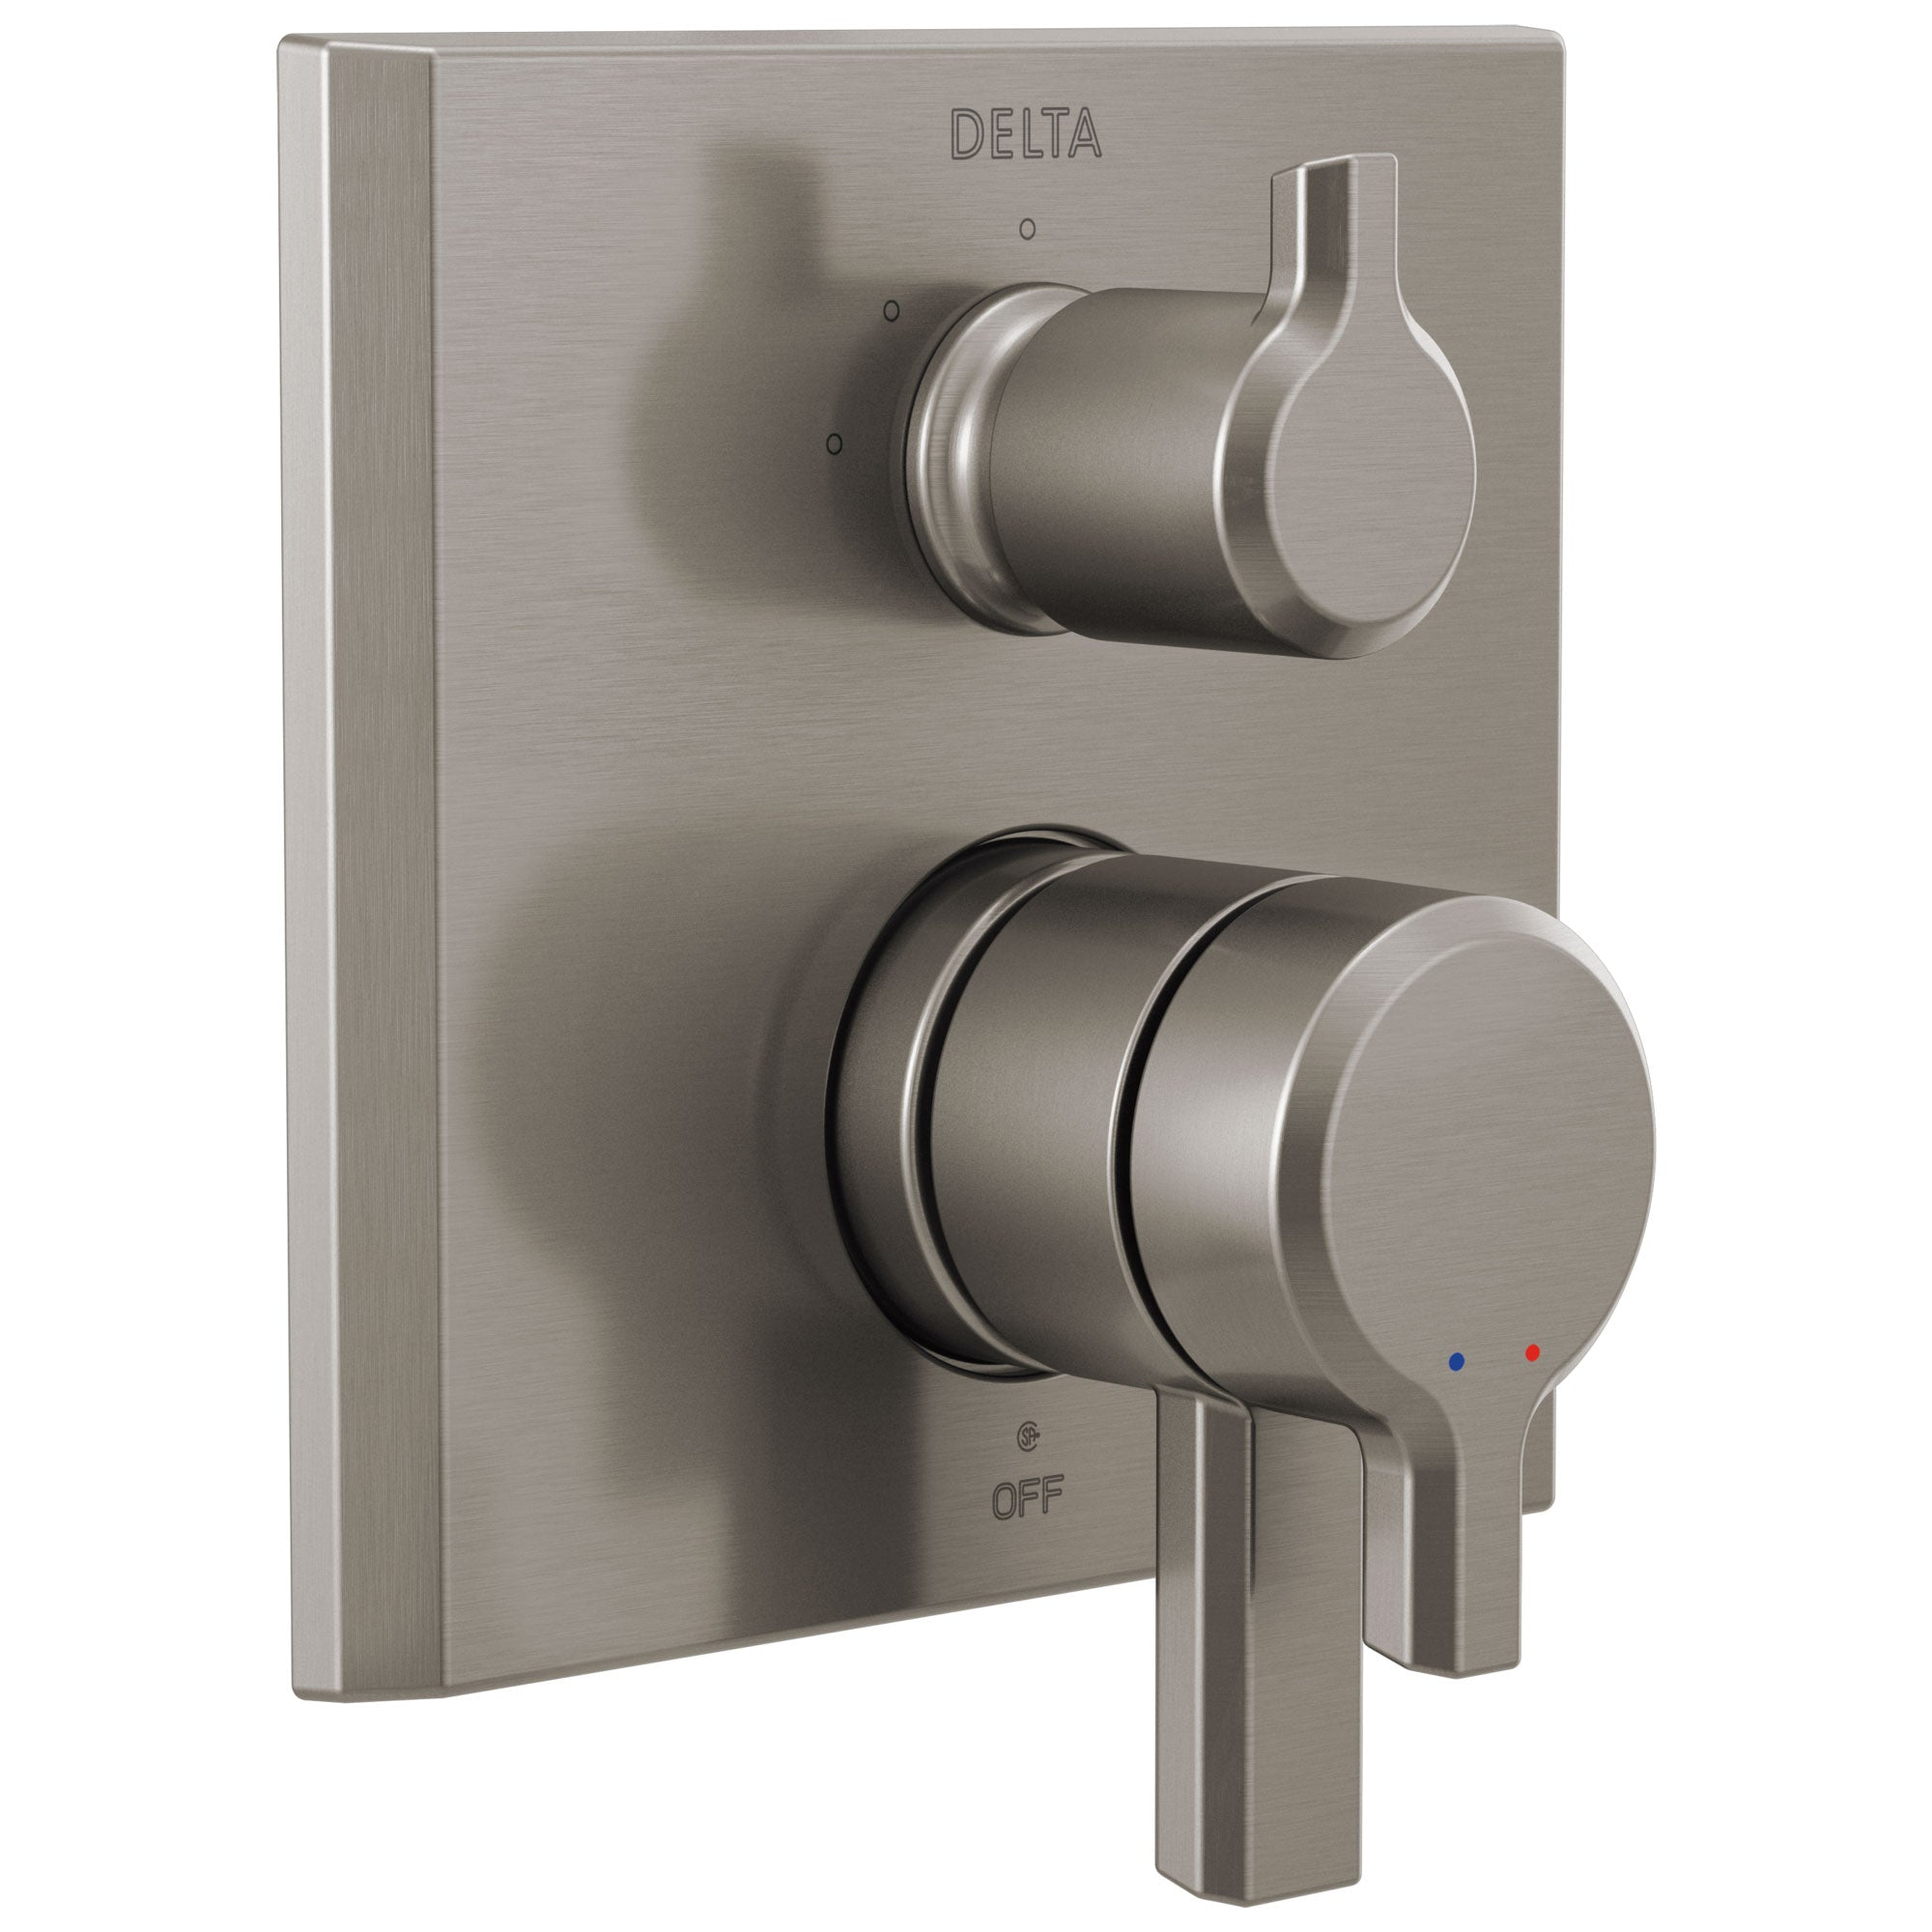 Delta Pivotal Stainless Steel Finish Monitor 17 Series Shower System Control with 3-Setting Diverter Includes Rough-in Valve and Handles D3717V